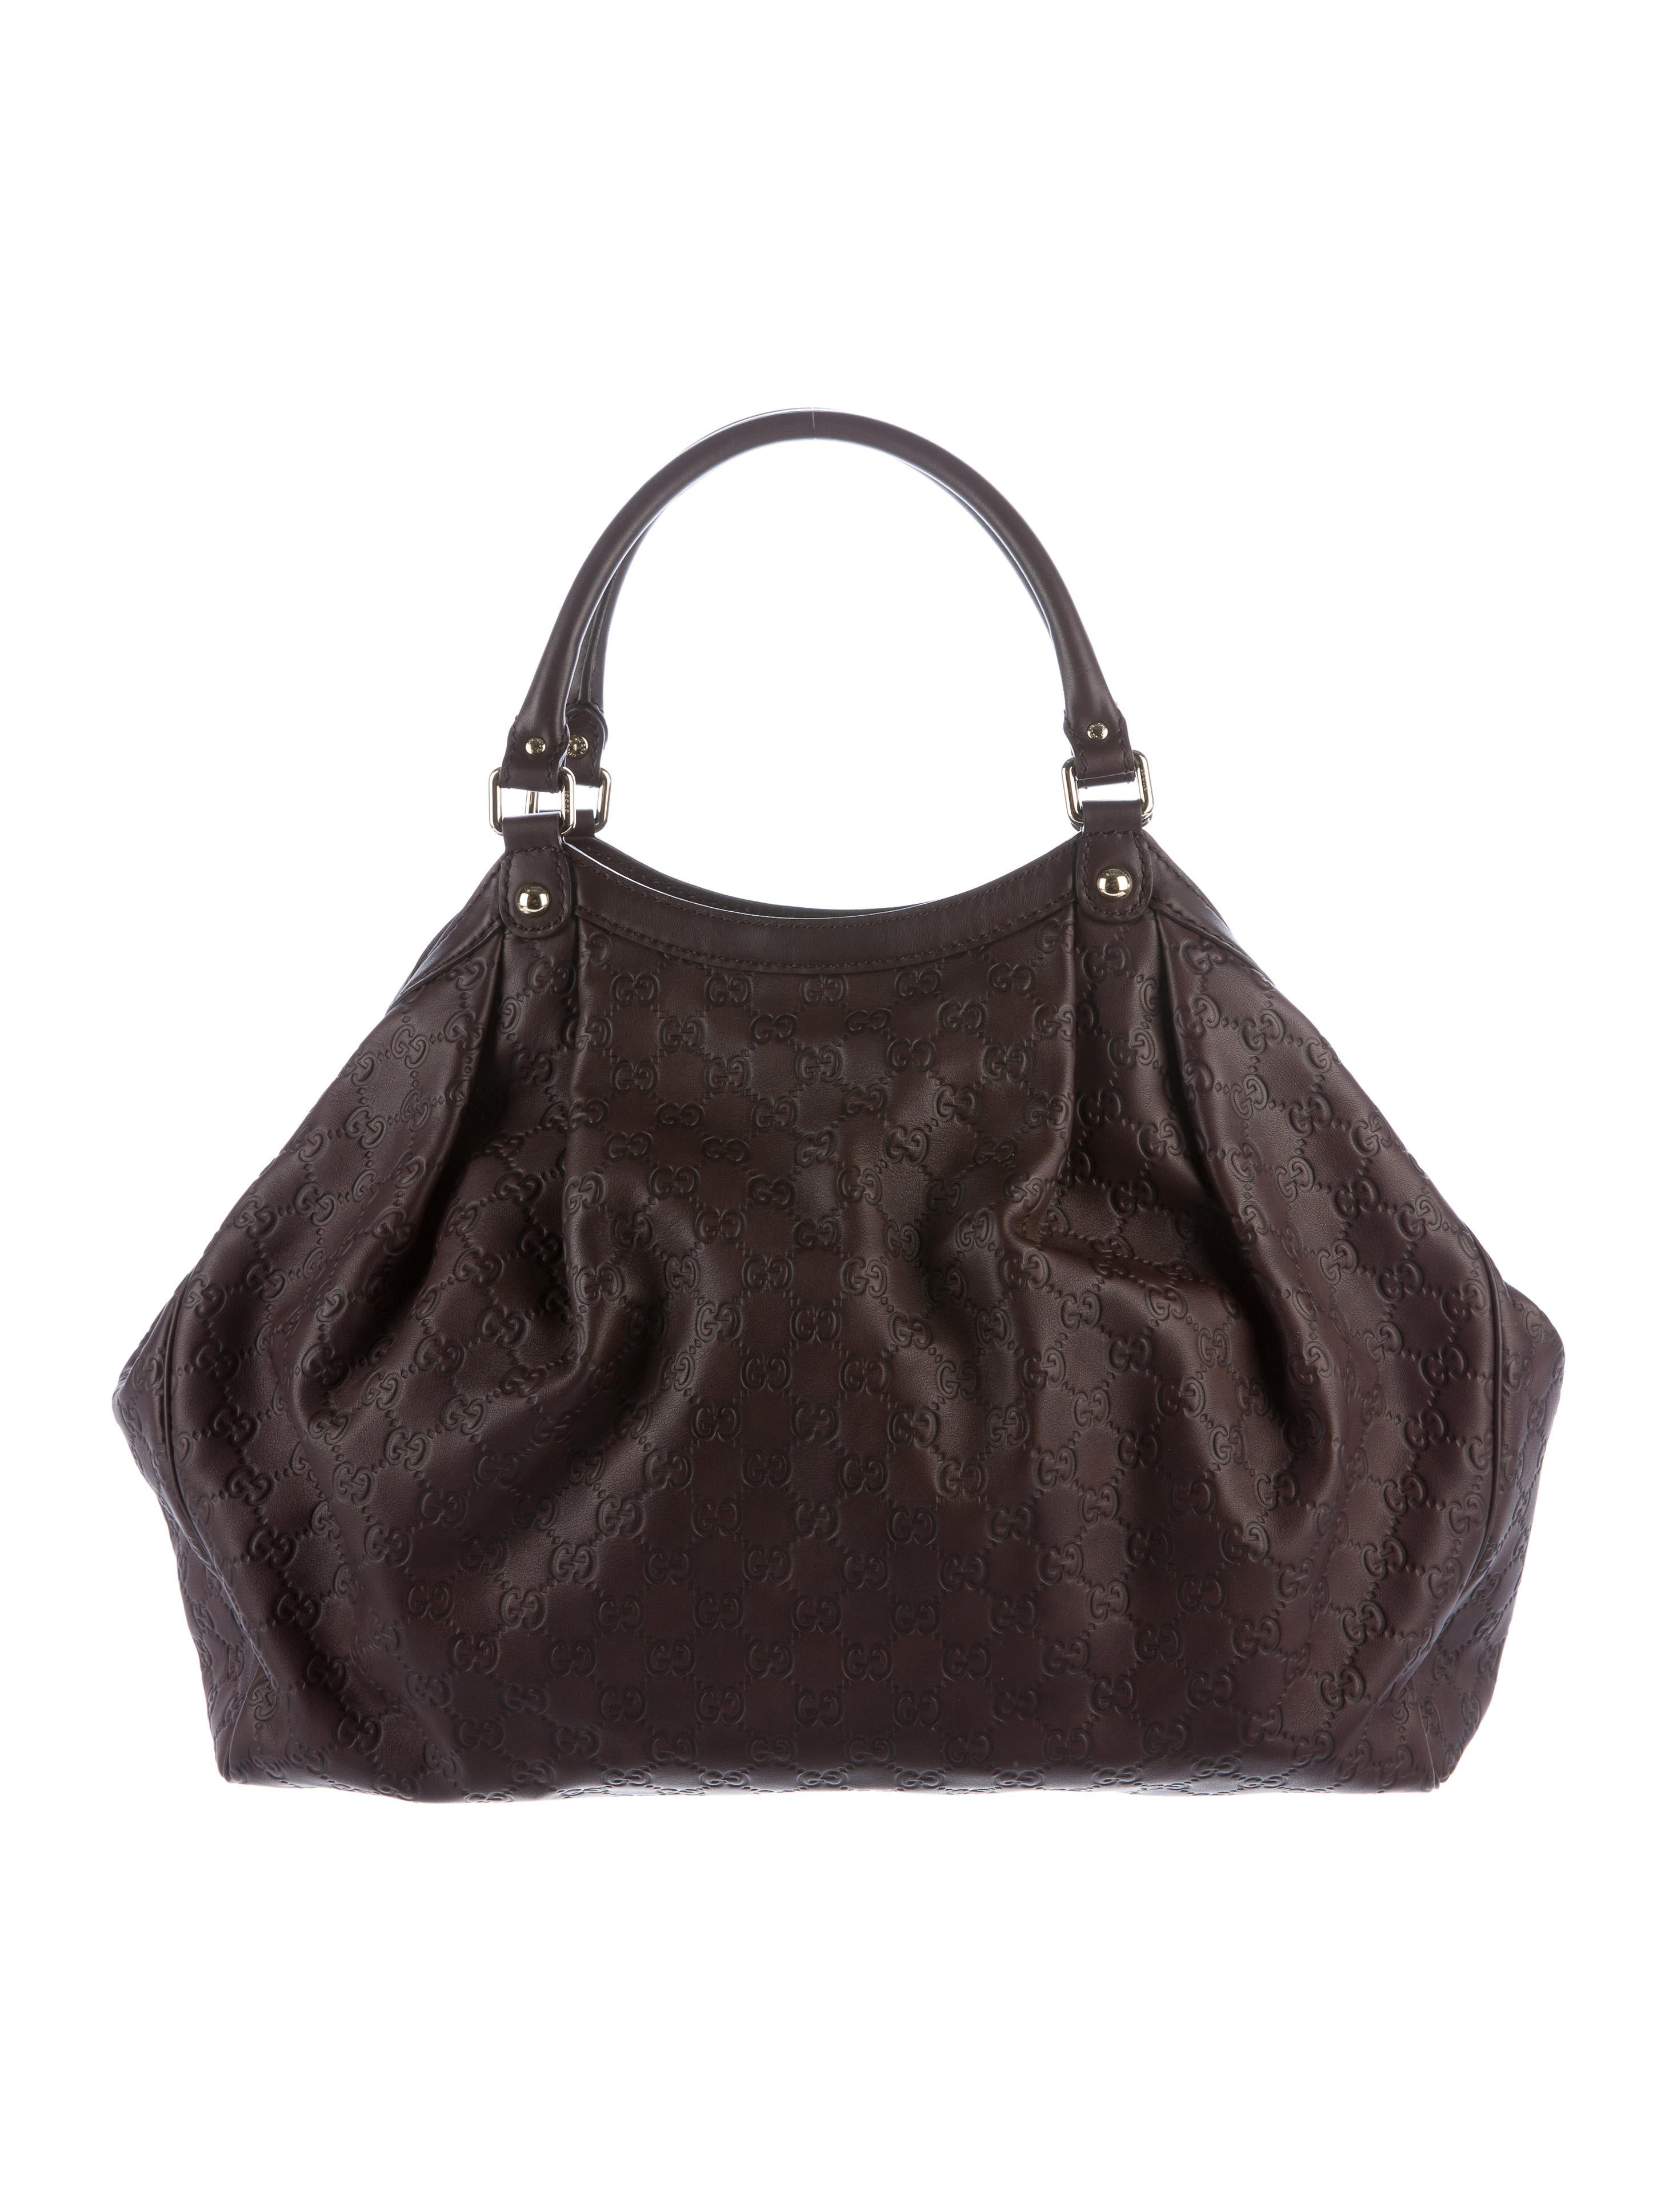 33cba0d3b165 Gucci Bags Large Pictures | Stanford Center for Opportunity Policy ...